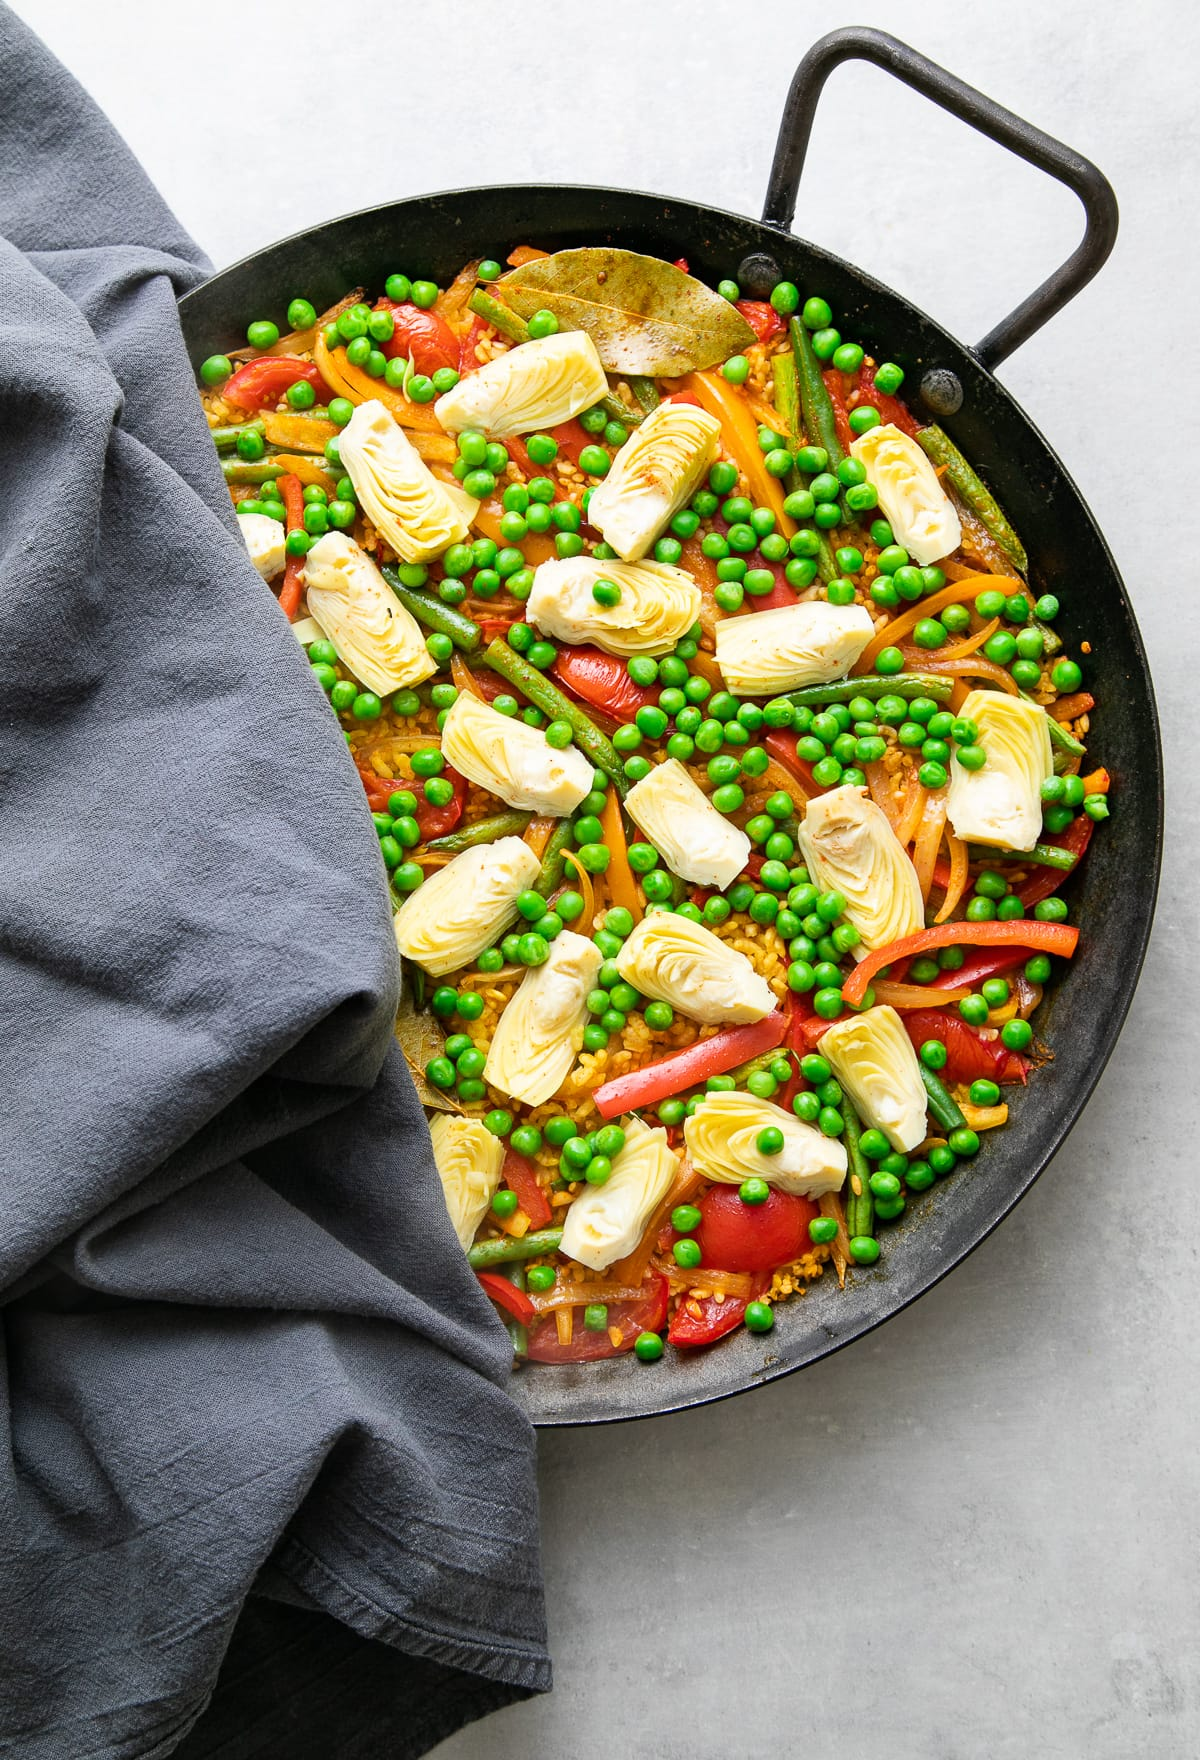 top down view showing veg broth poured over rice and veggies in paella pan.